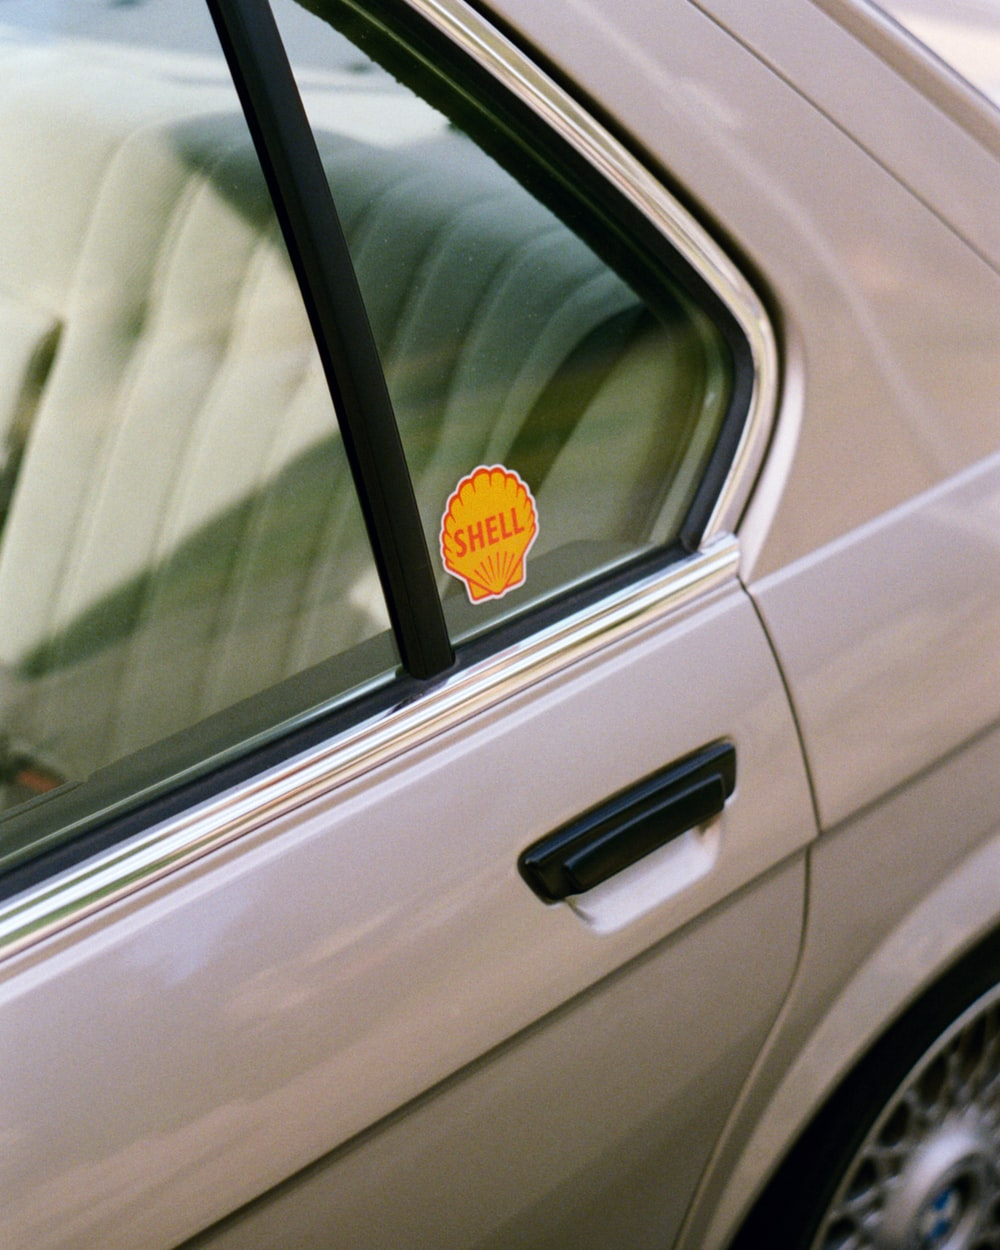 Shell decay sticker